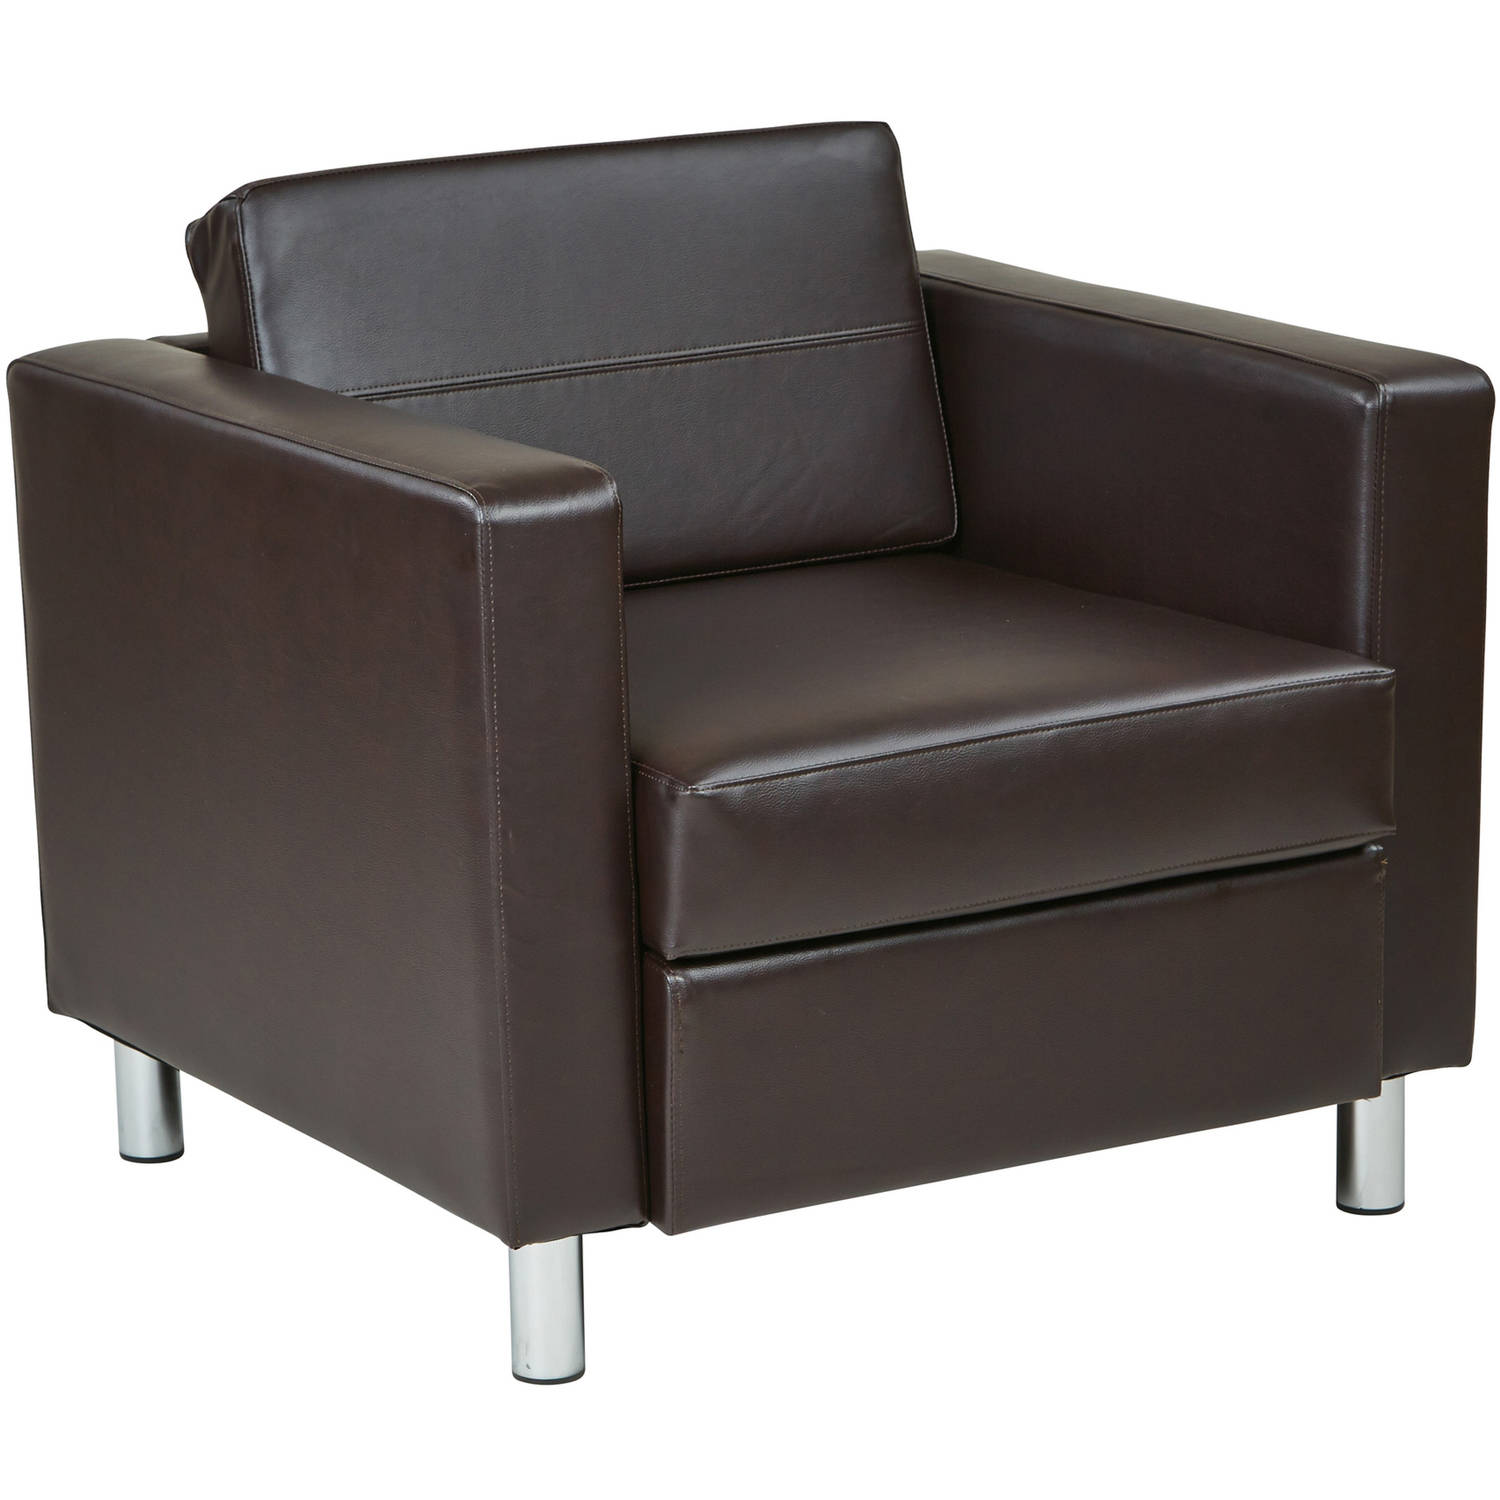 Ave Six Pacific Easy-Care Faux Leather Armchair with Box Spring Seat & Silver Color Legs by Avenue Six